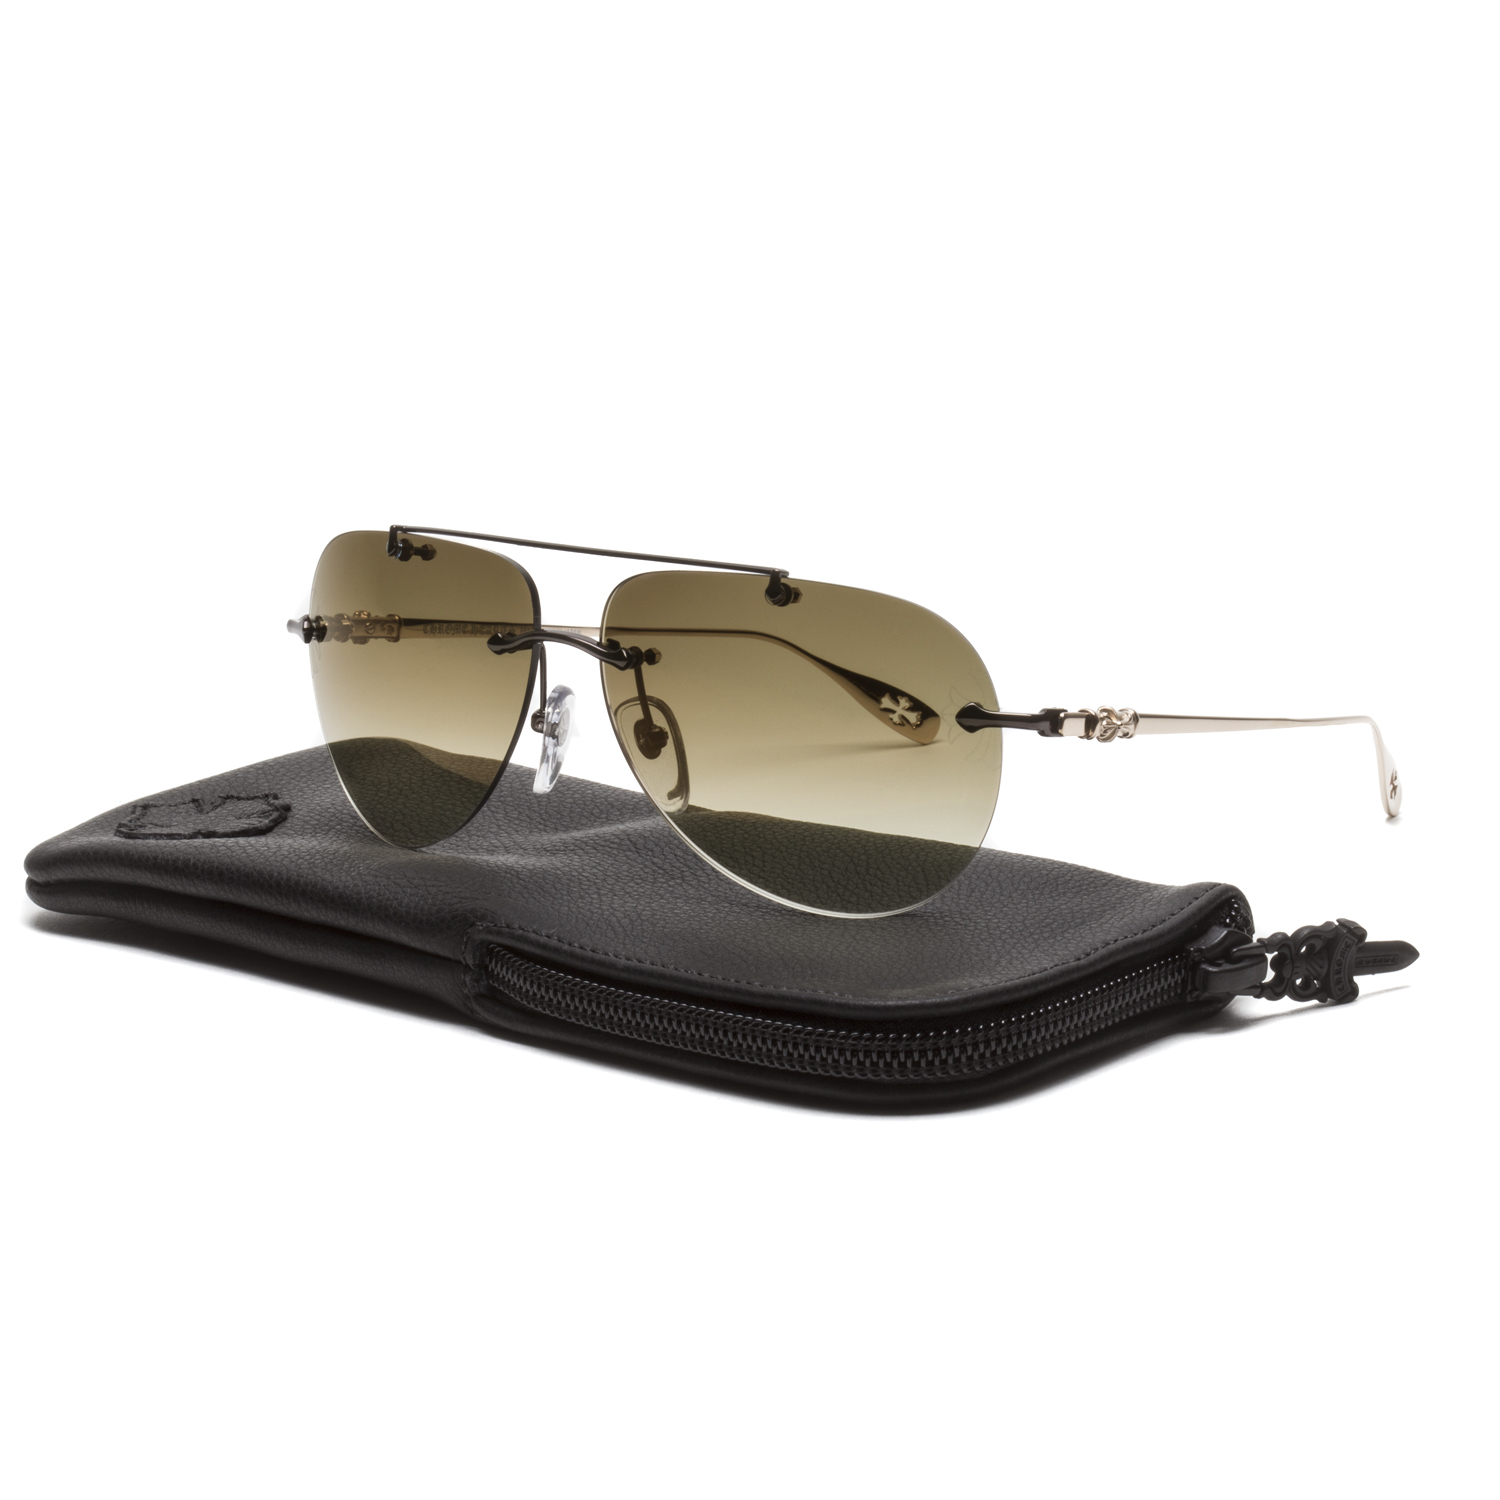 34b41dc5fa4c Chrome Hearts Stains V Sunglasses Chocolate Brown Gold Plated ...